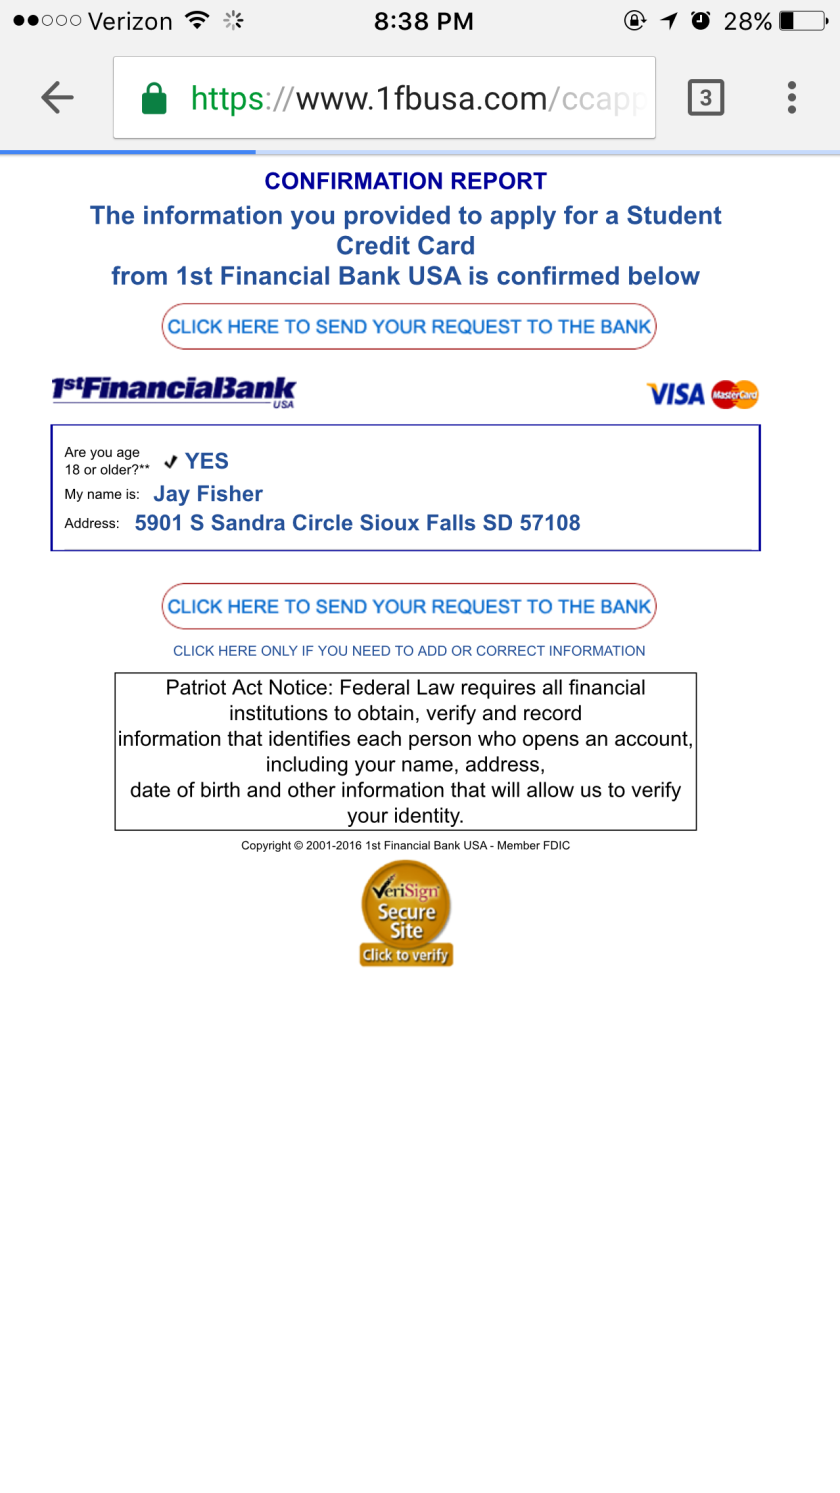 1st Financial Bank Confirmation